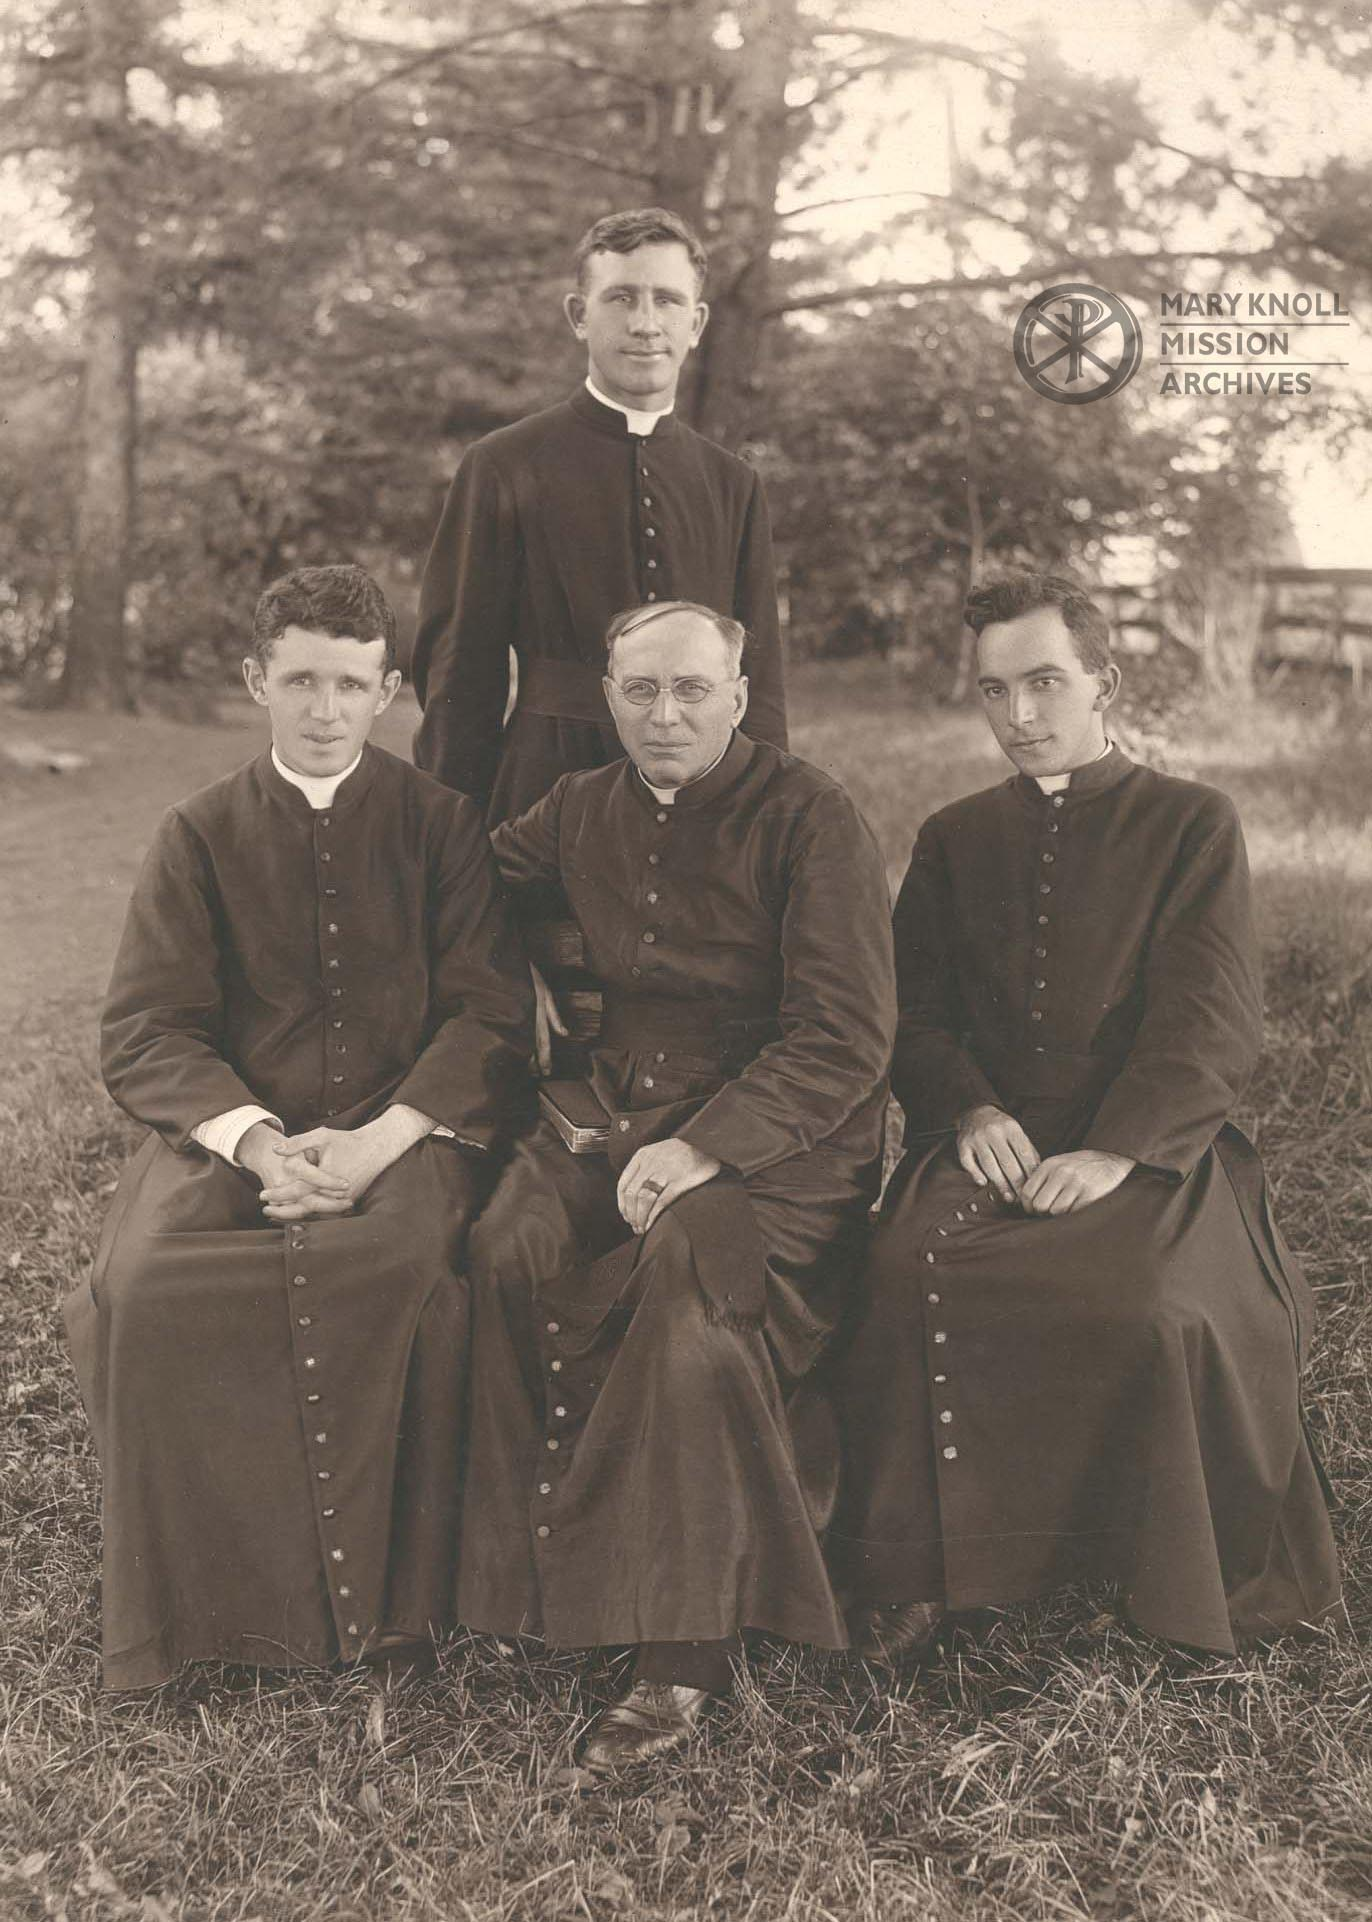 Fr. James Edward Walsh, Fr. Bernard Meyer (standing), Fr. Thomas Frederick Price, and Fr. Francis X. Ford